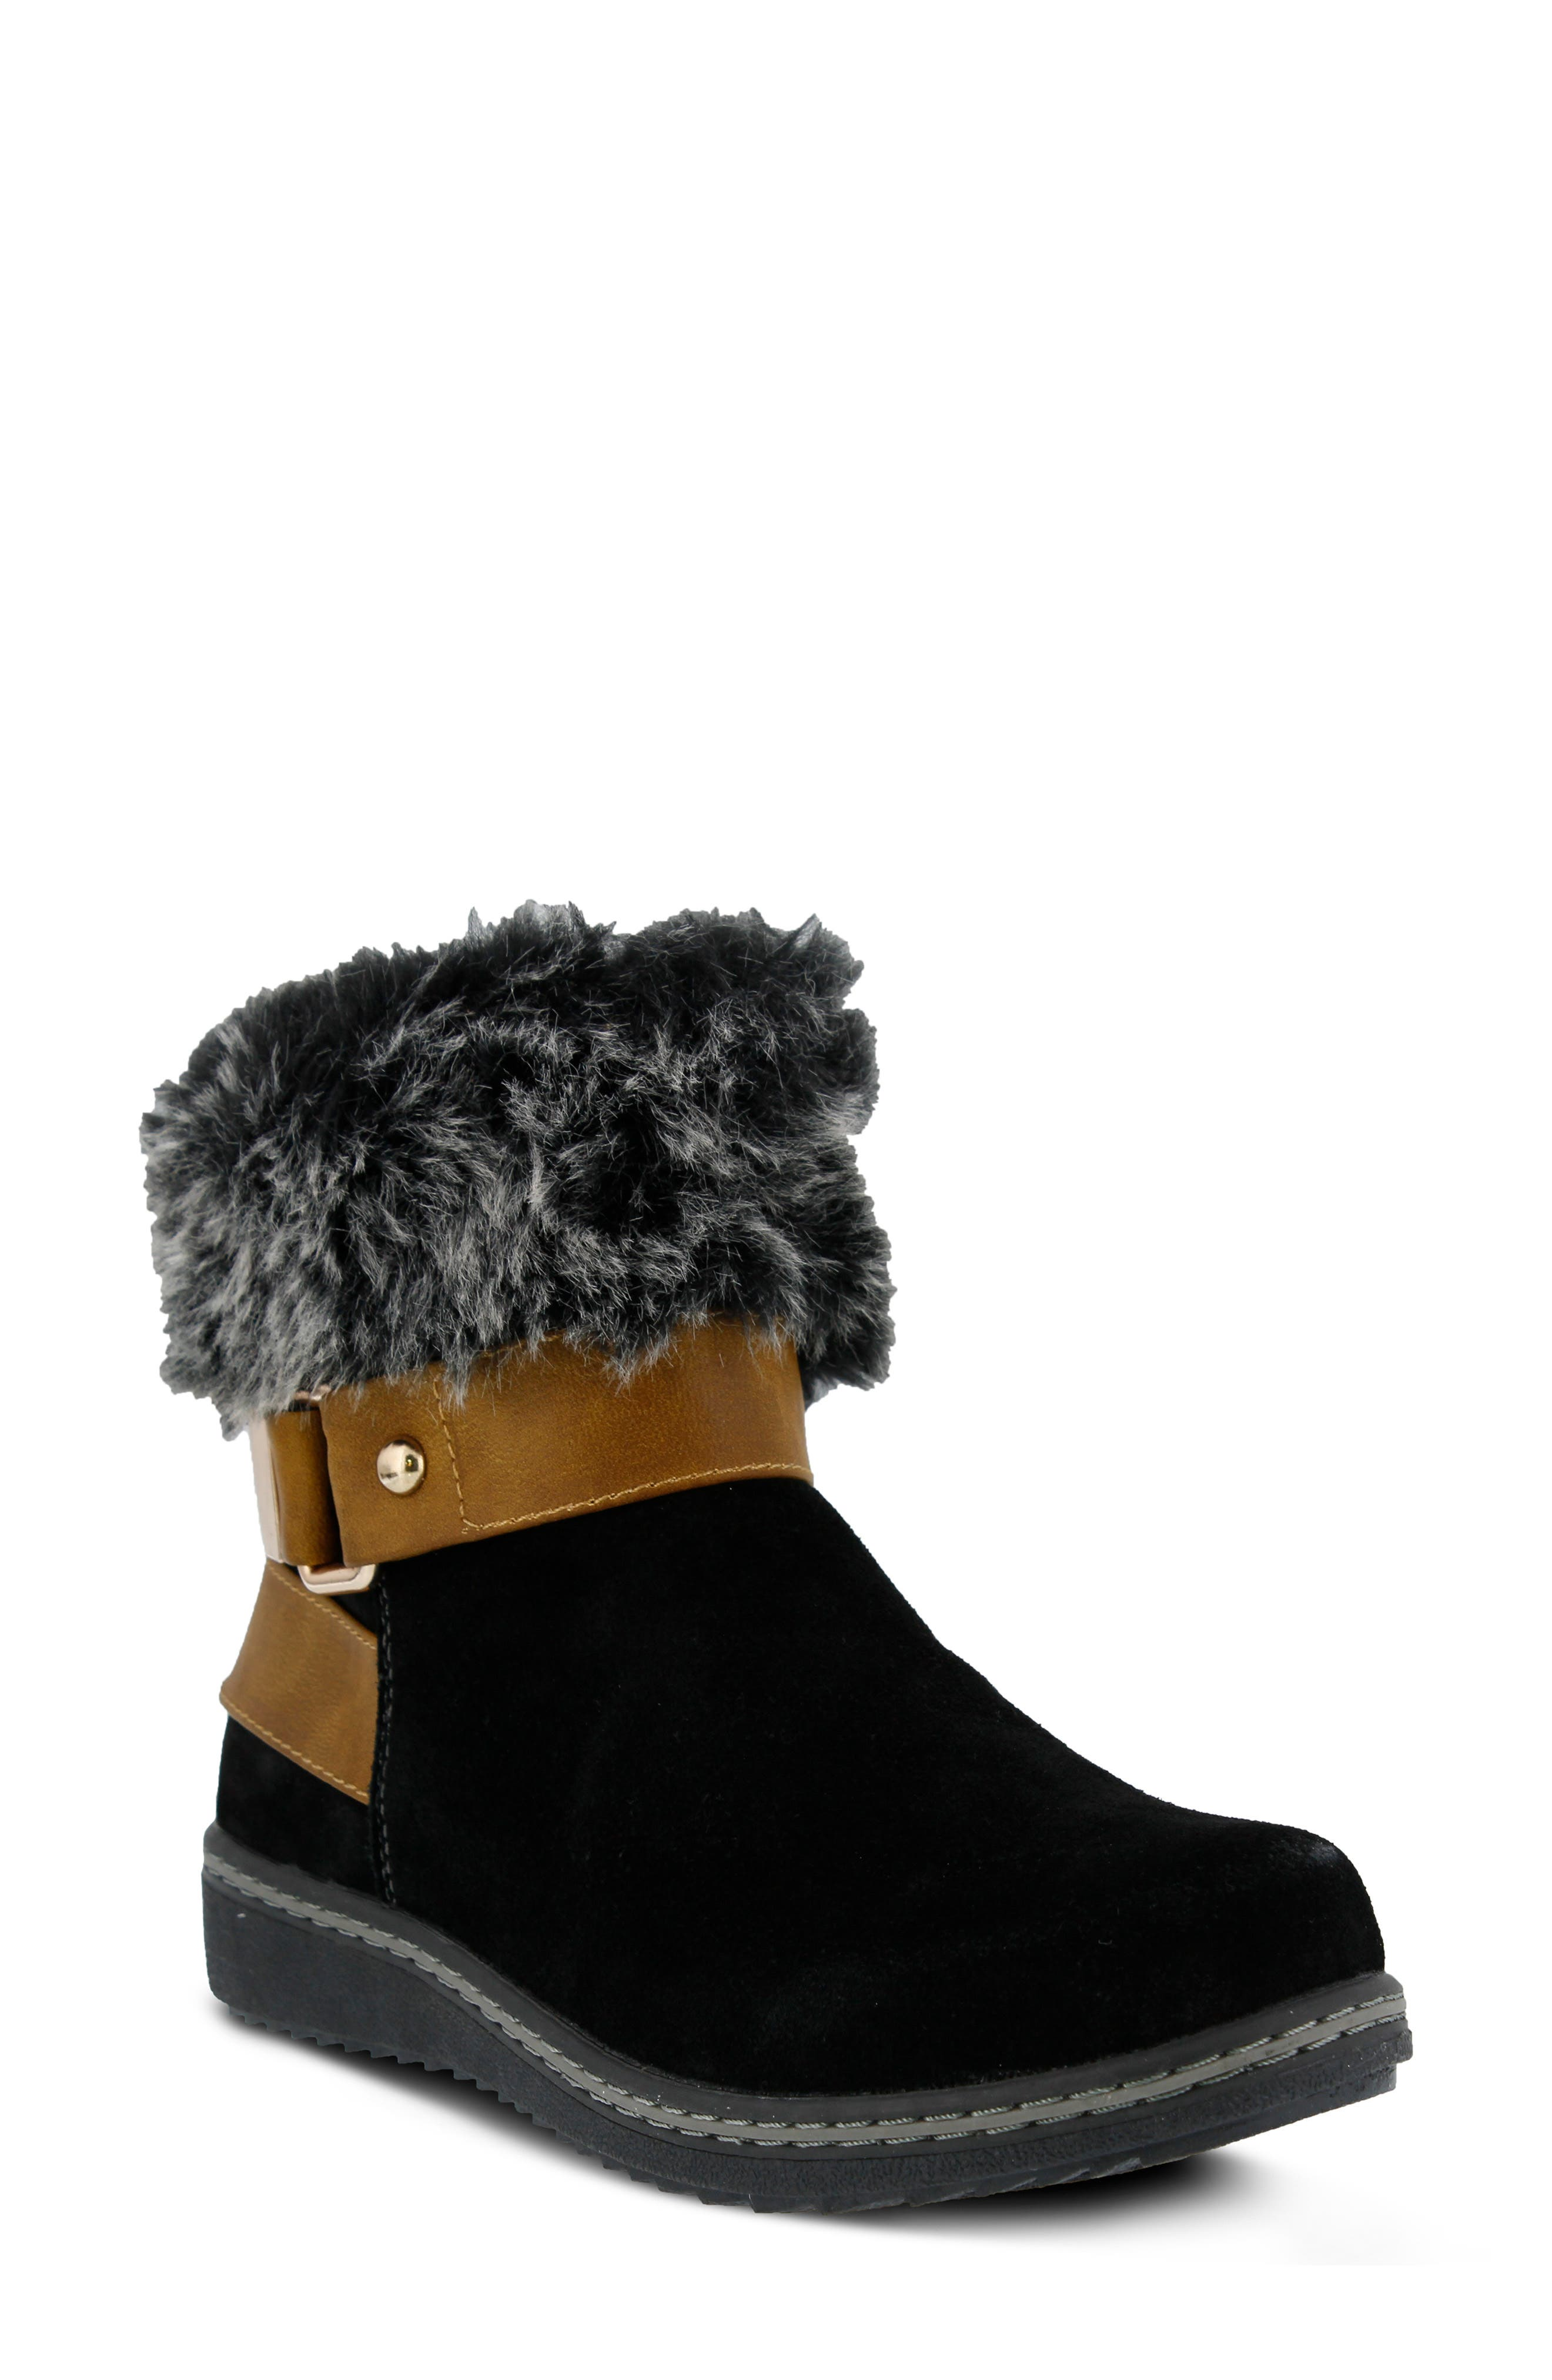 Spring Step Water Resistant Faux Fur Bootie - Black